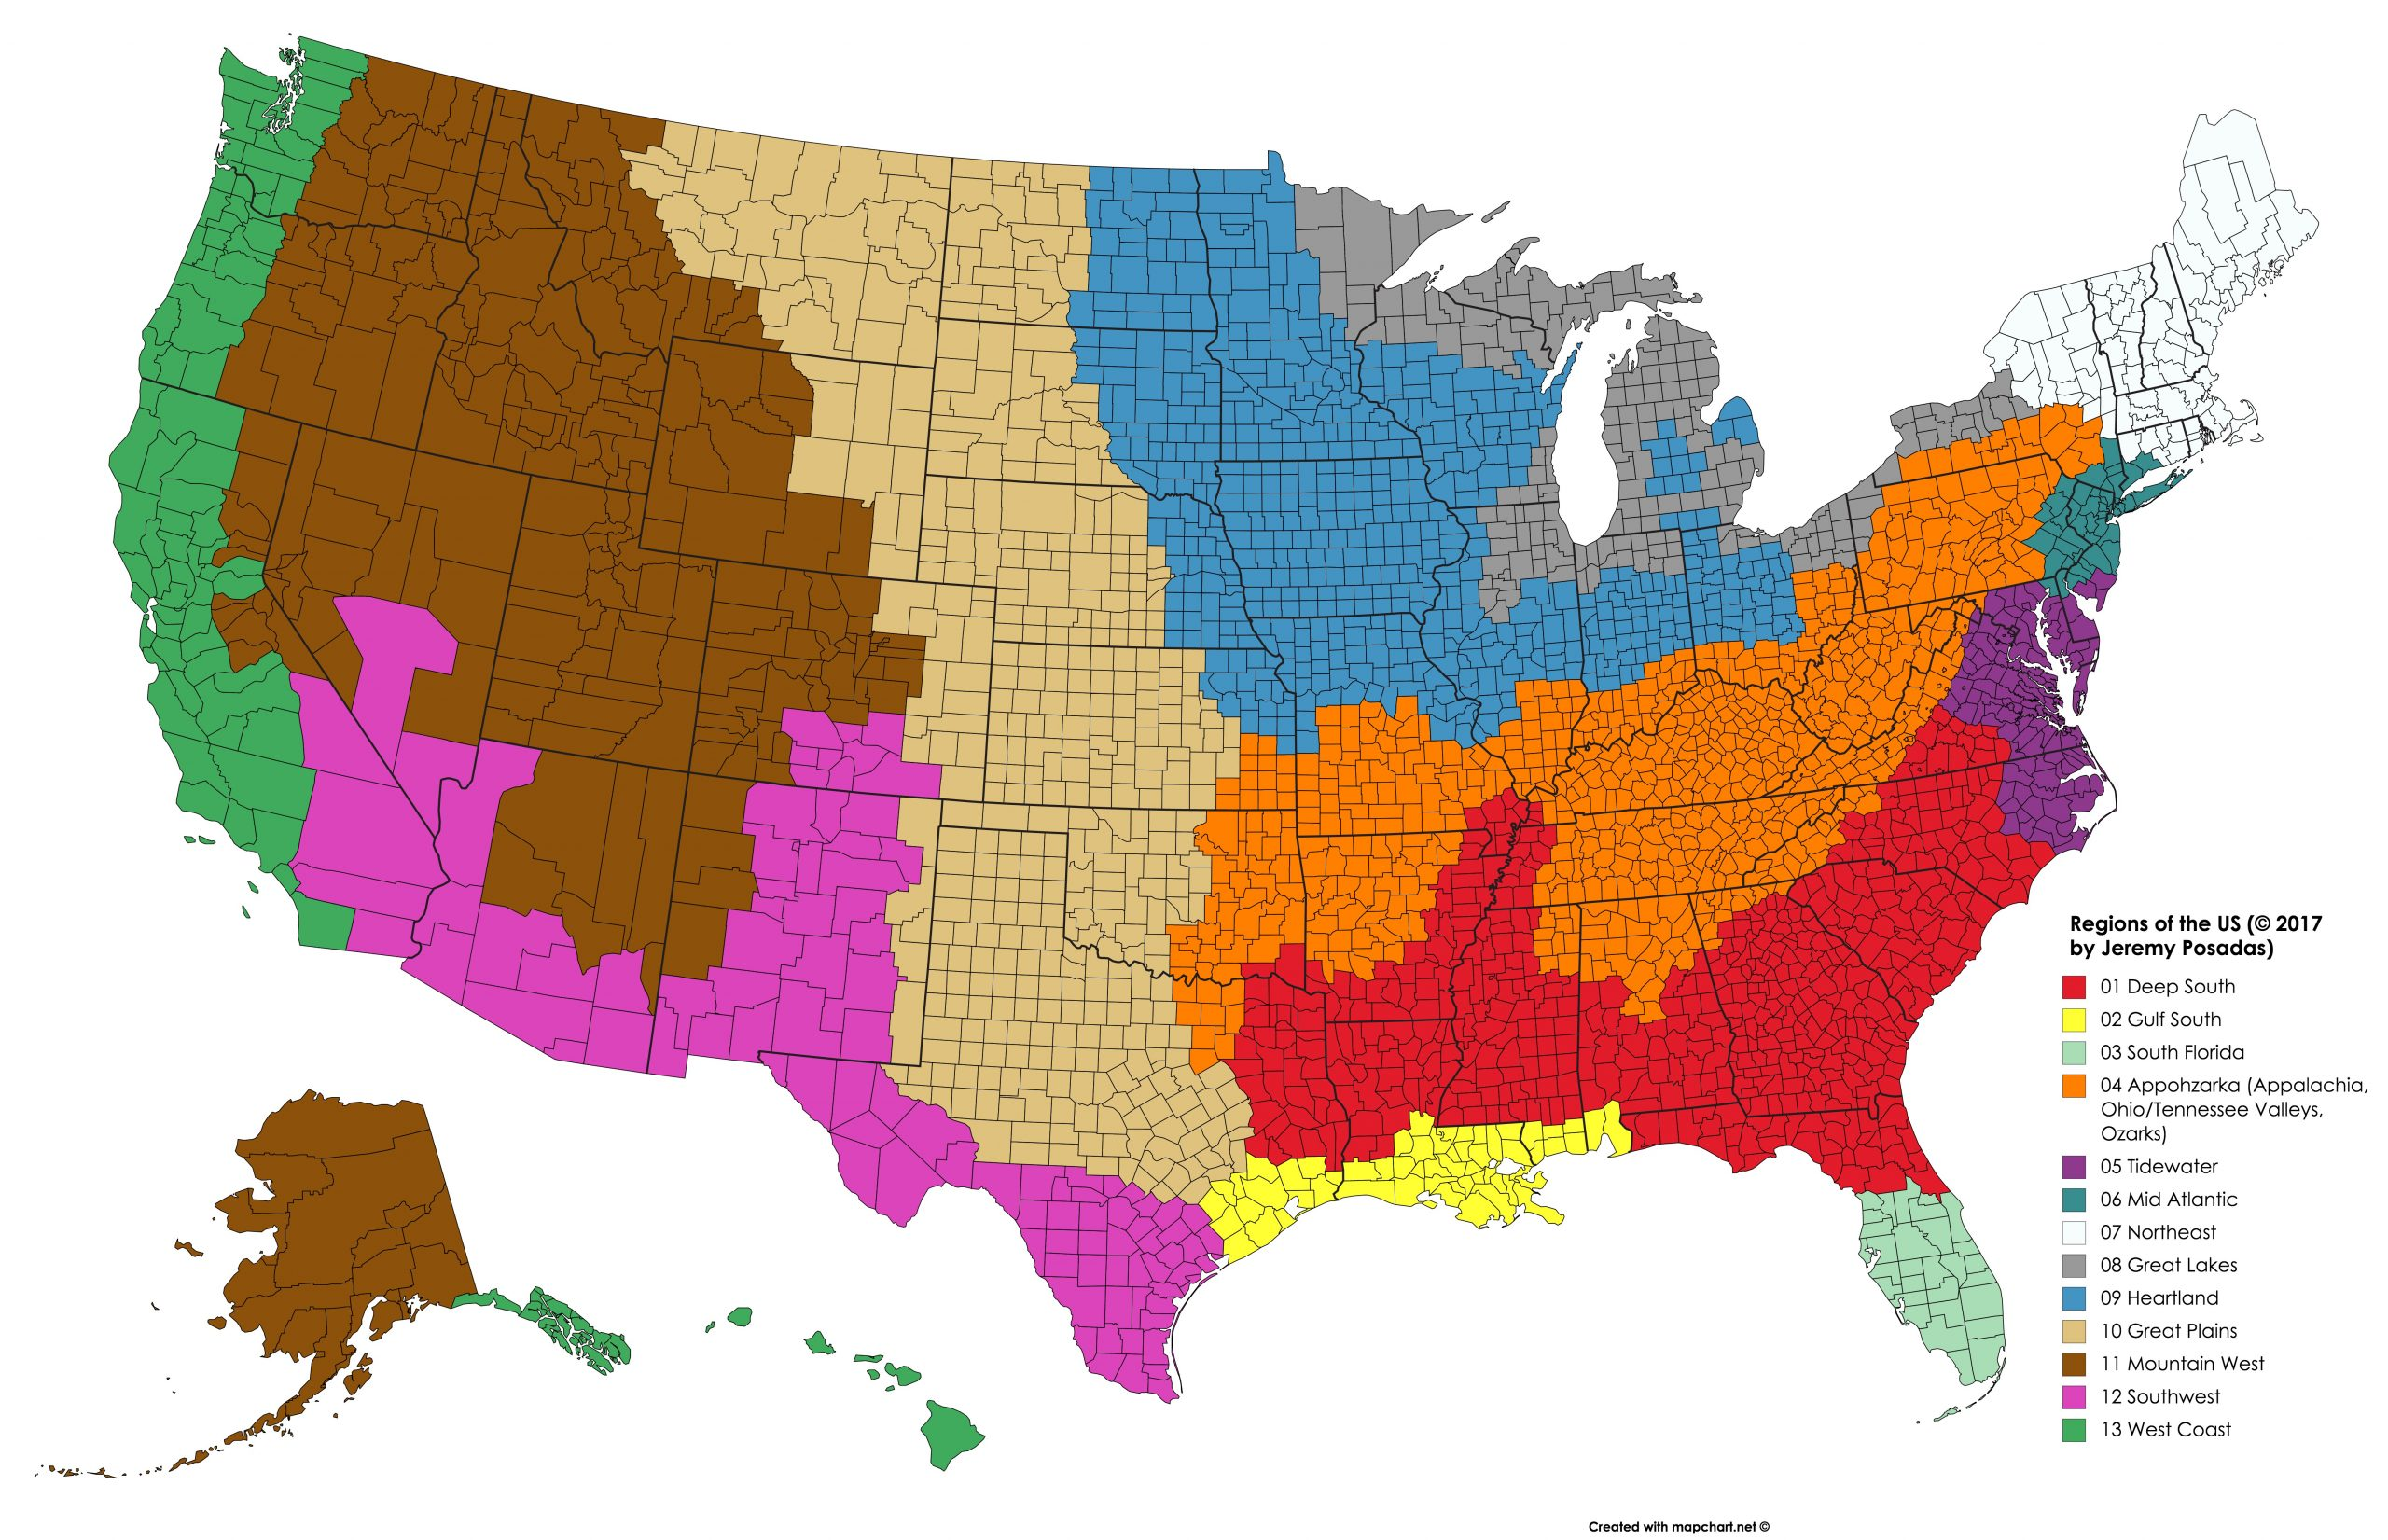 The United States: A Confederation Of 13 Regions – In The Arenas pour Les 13 Régions